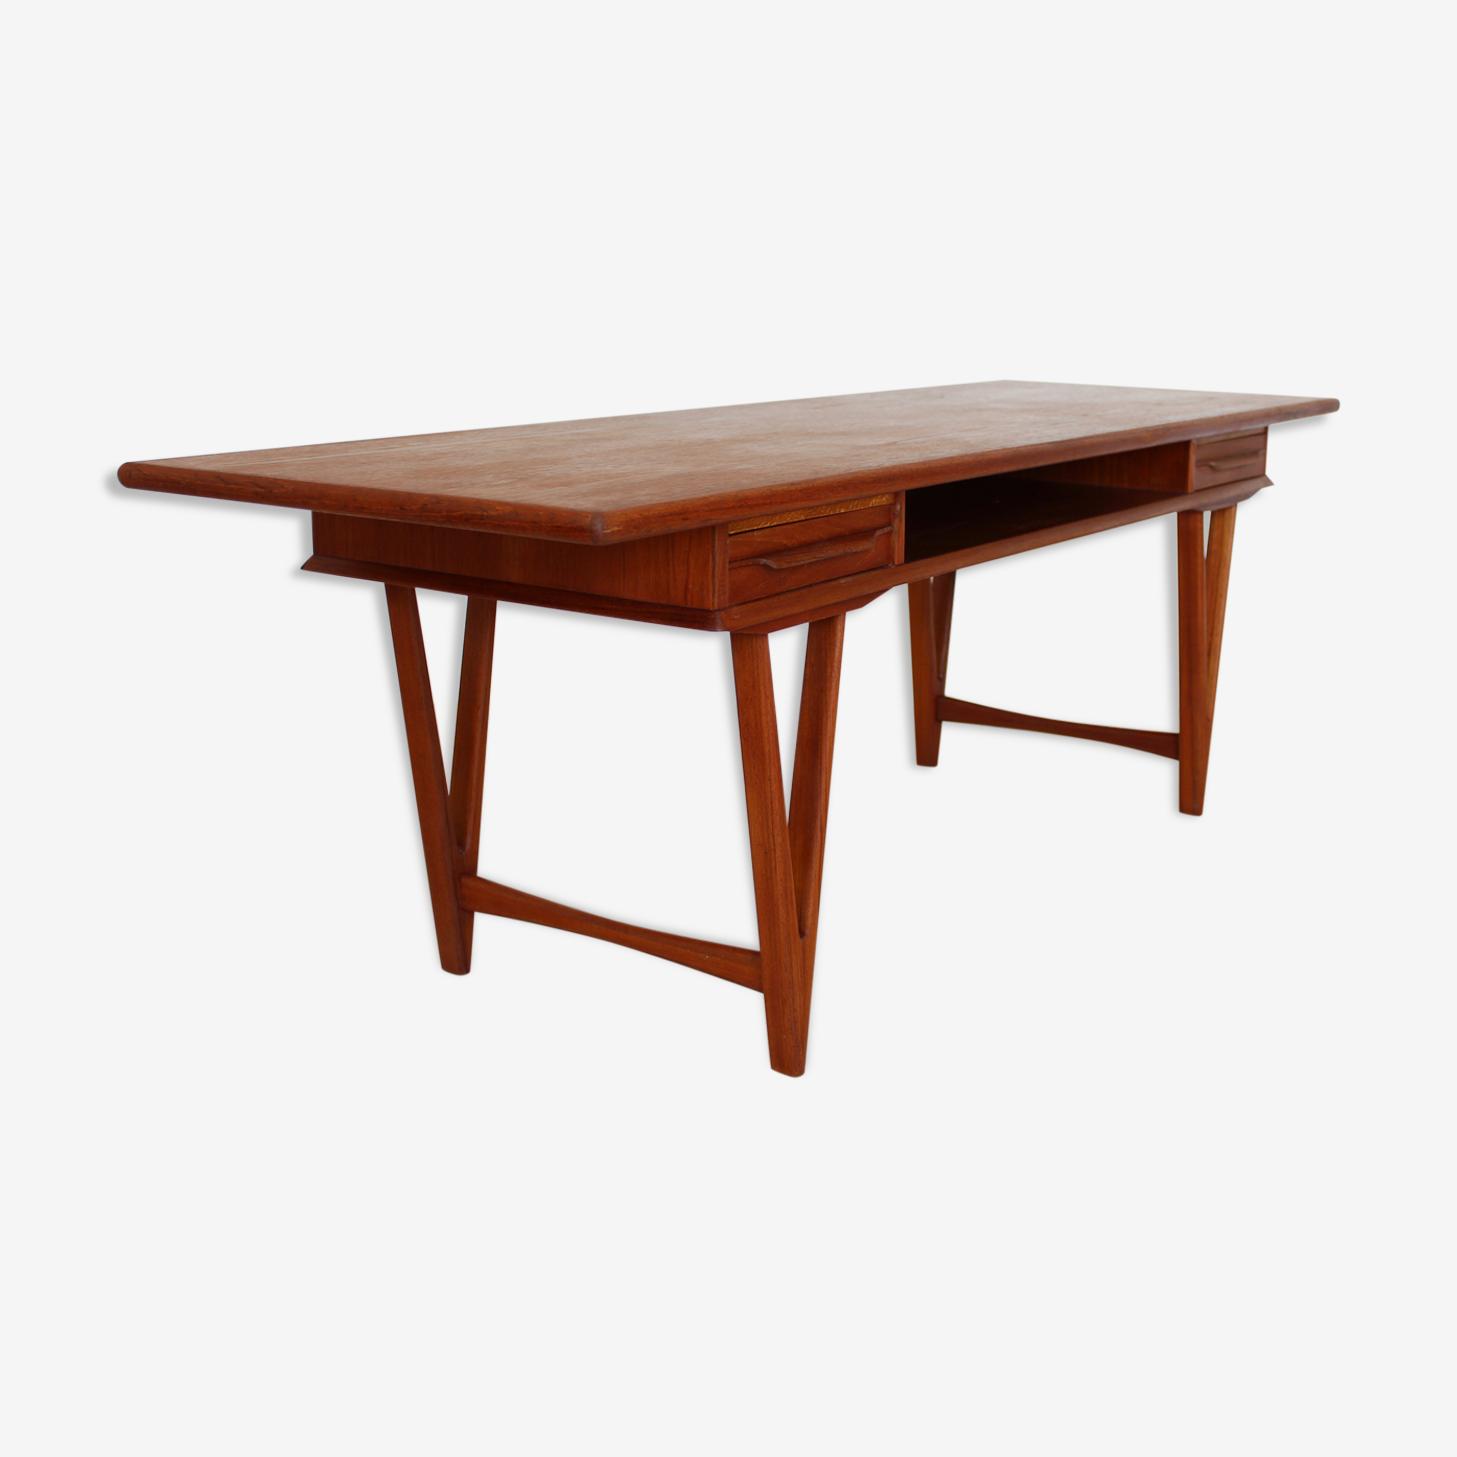 Teak coffee table by E. W. Bach for Toften Møbelfabrik